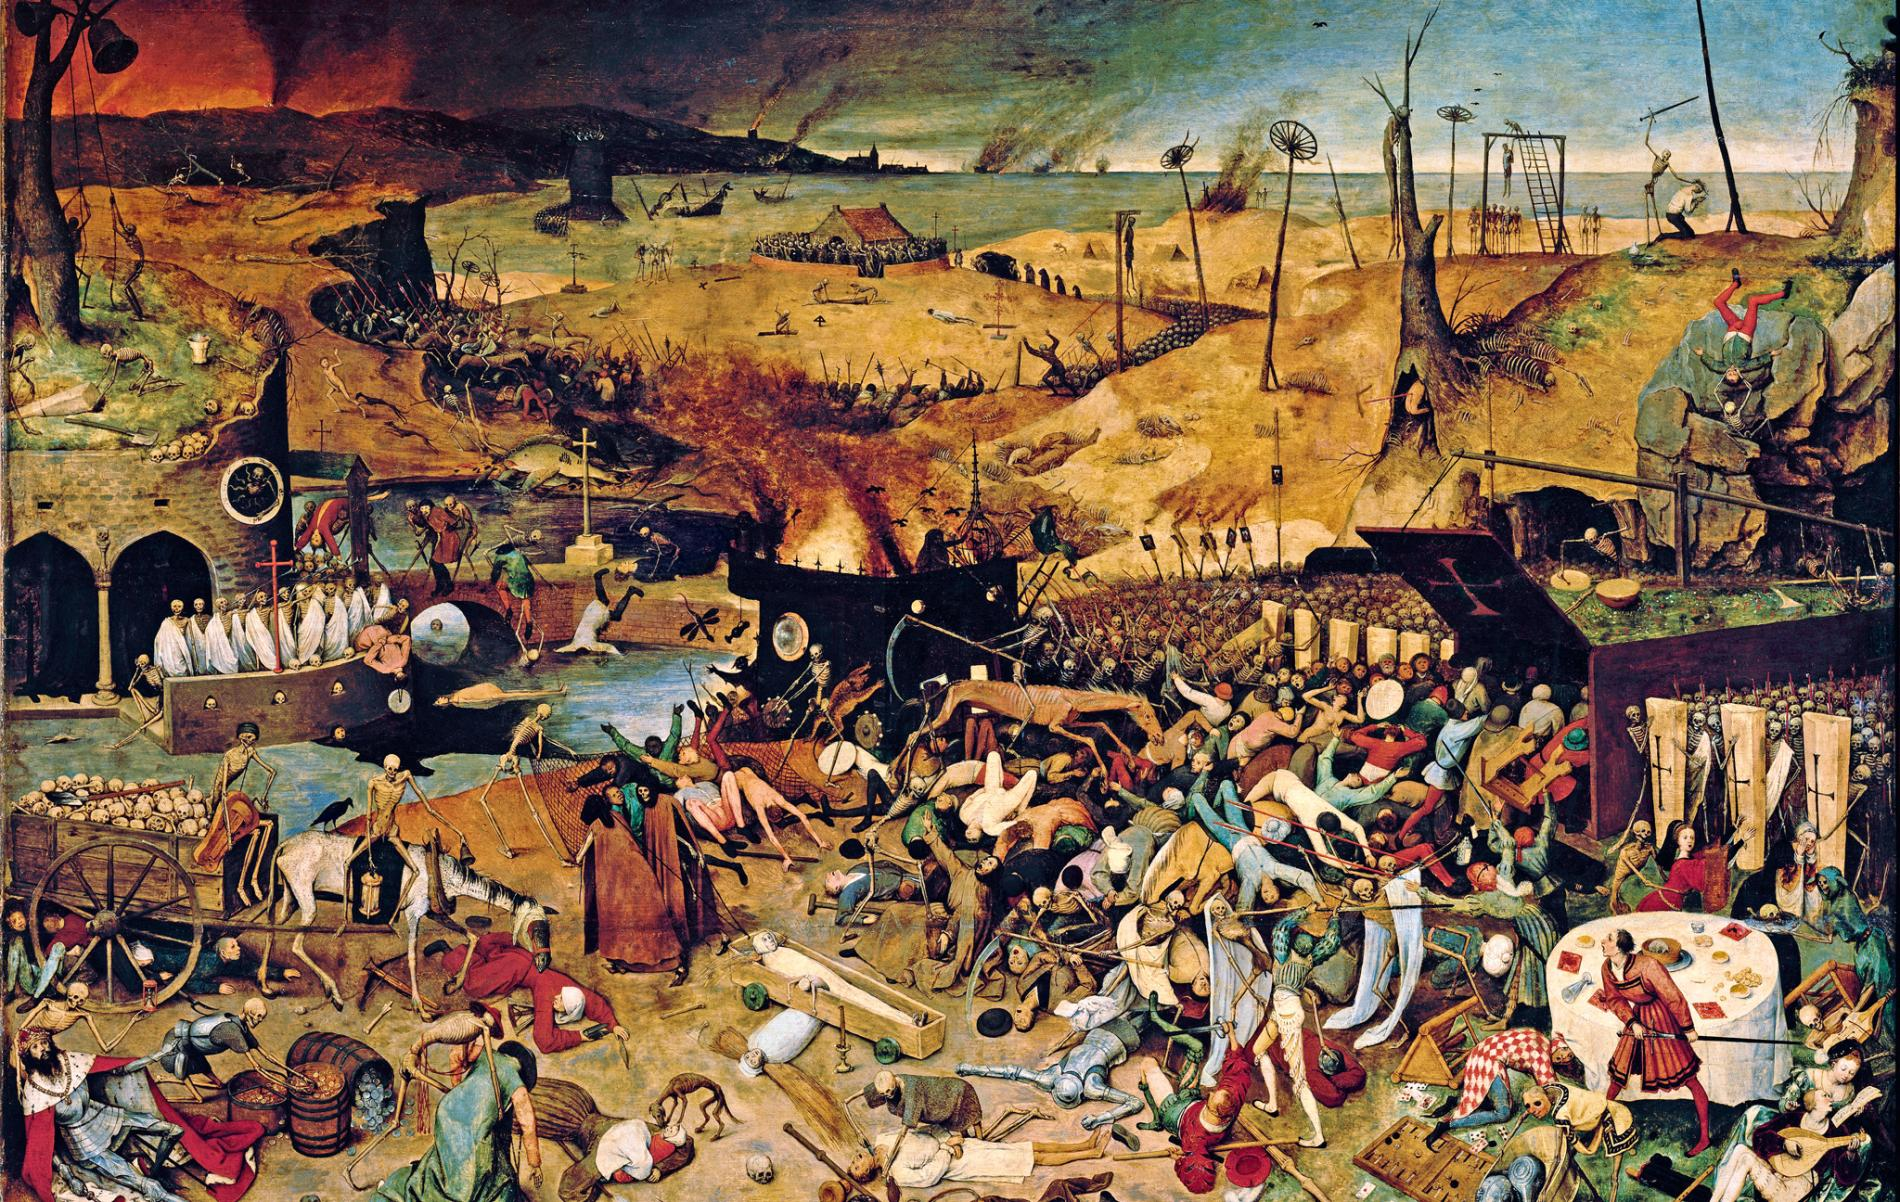 Pieter Bruegel's The Triumph of Death reflects the social upheaval and terror that followed plague, which devastated medieval Europe.